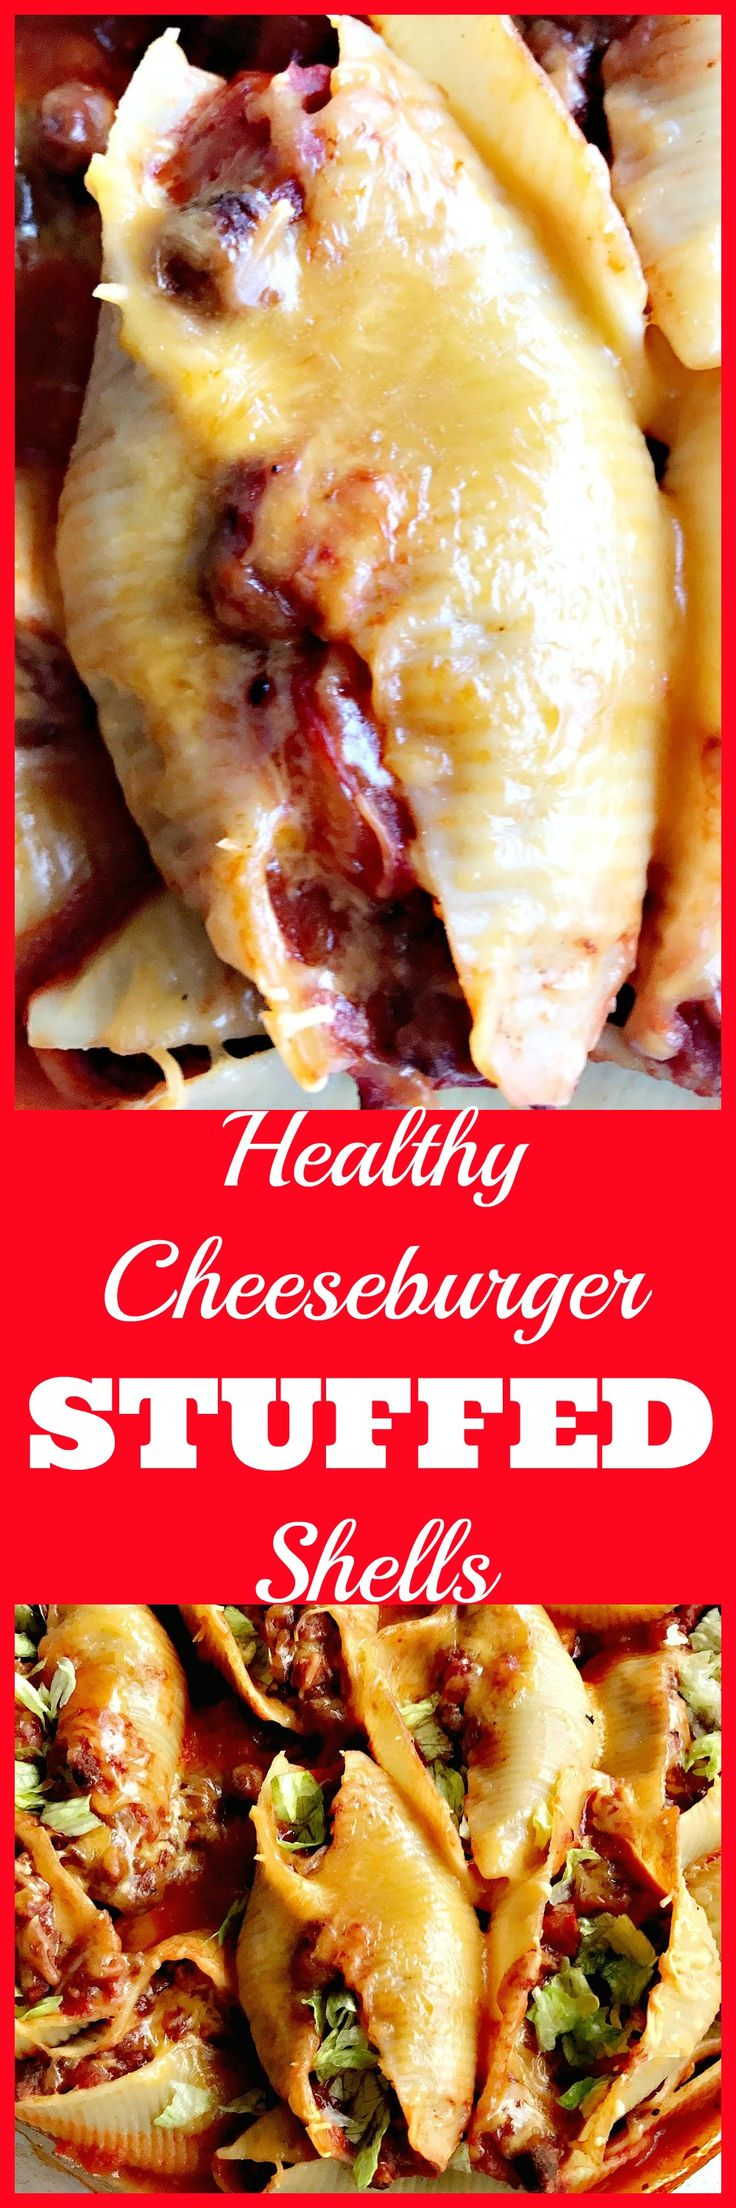 Healthy, skinny, lightened-up cheeseburger stuffed shells with tomato meat sauce, mustard seasoning, lettuce, and cheese.